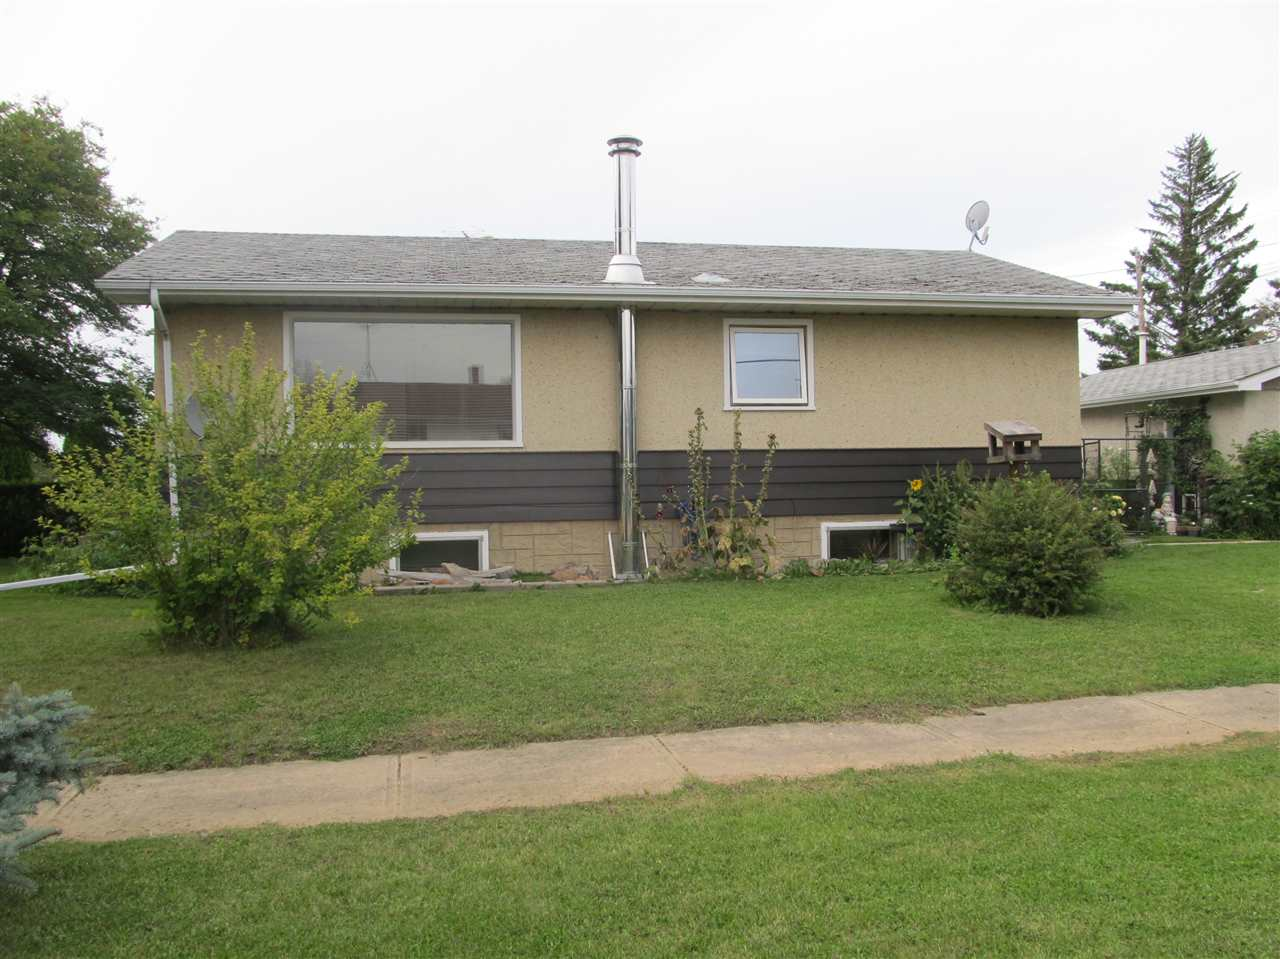 Main Photo: 501 5 Street: Thorhild House for sale : MLS(r) # E4057316